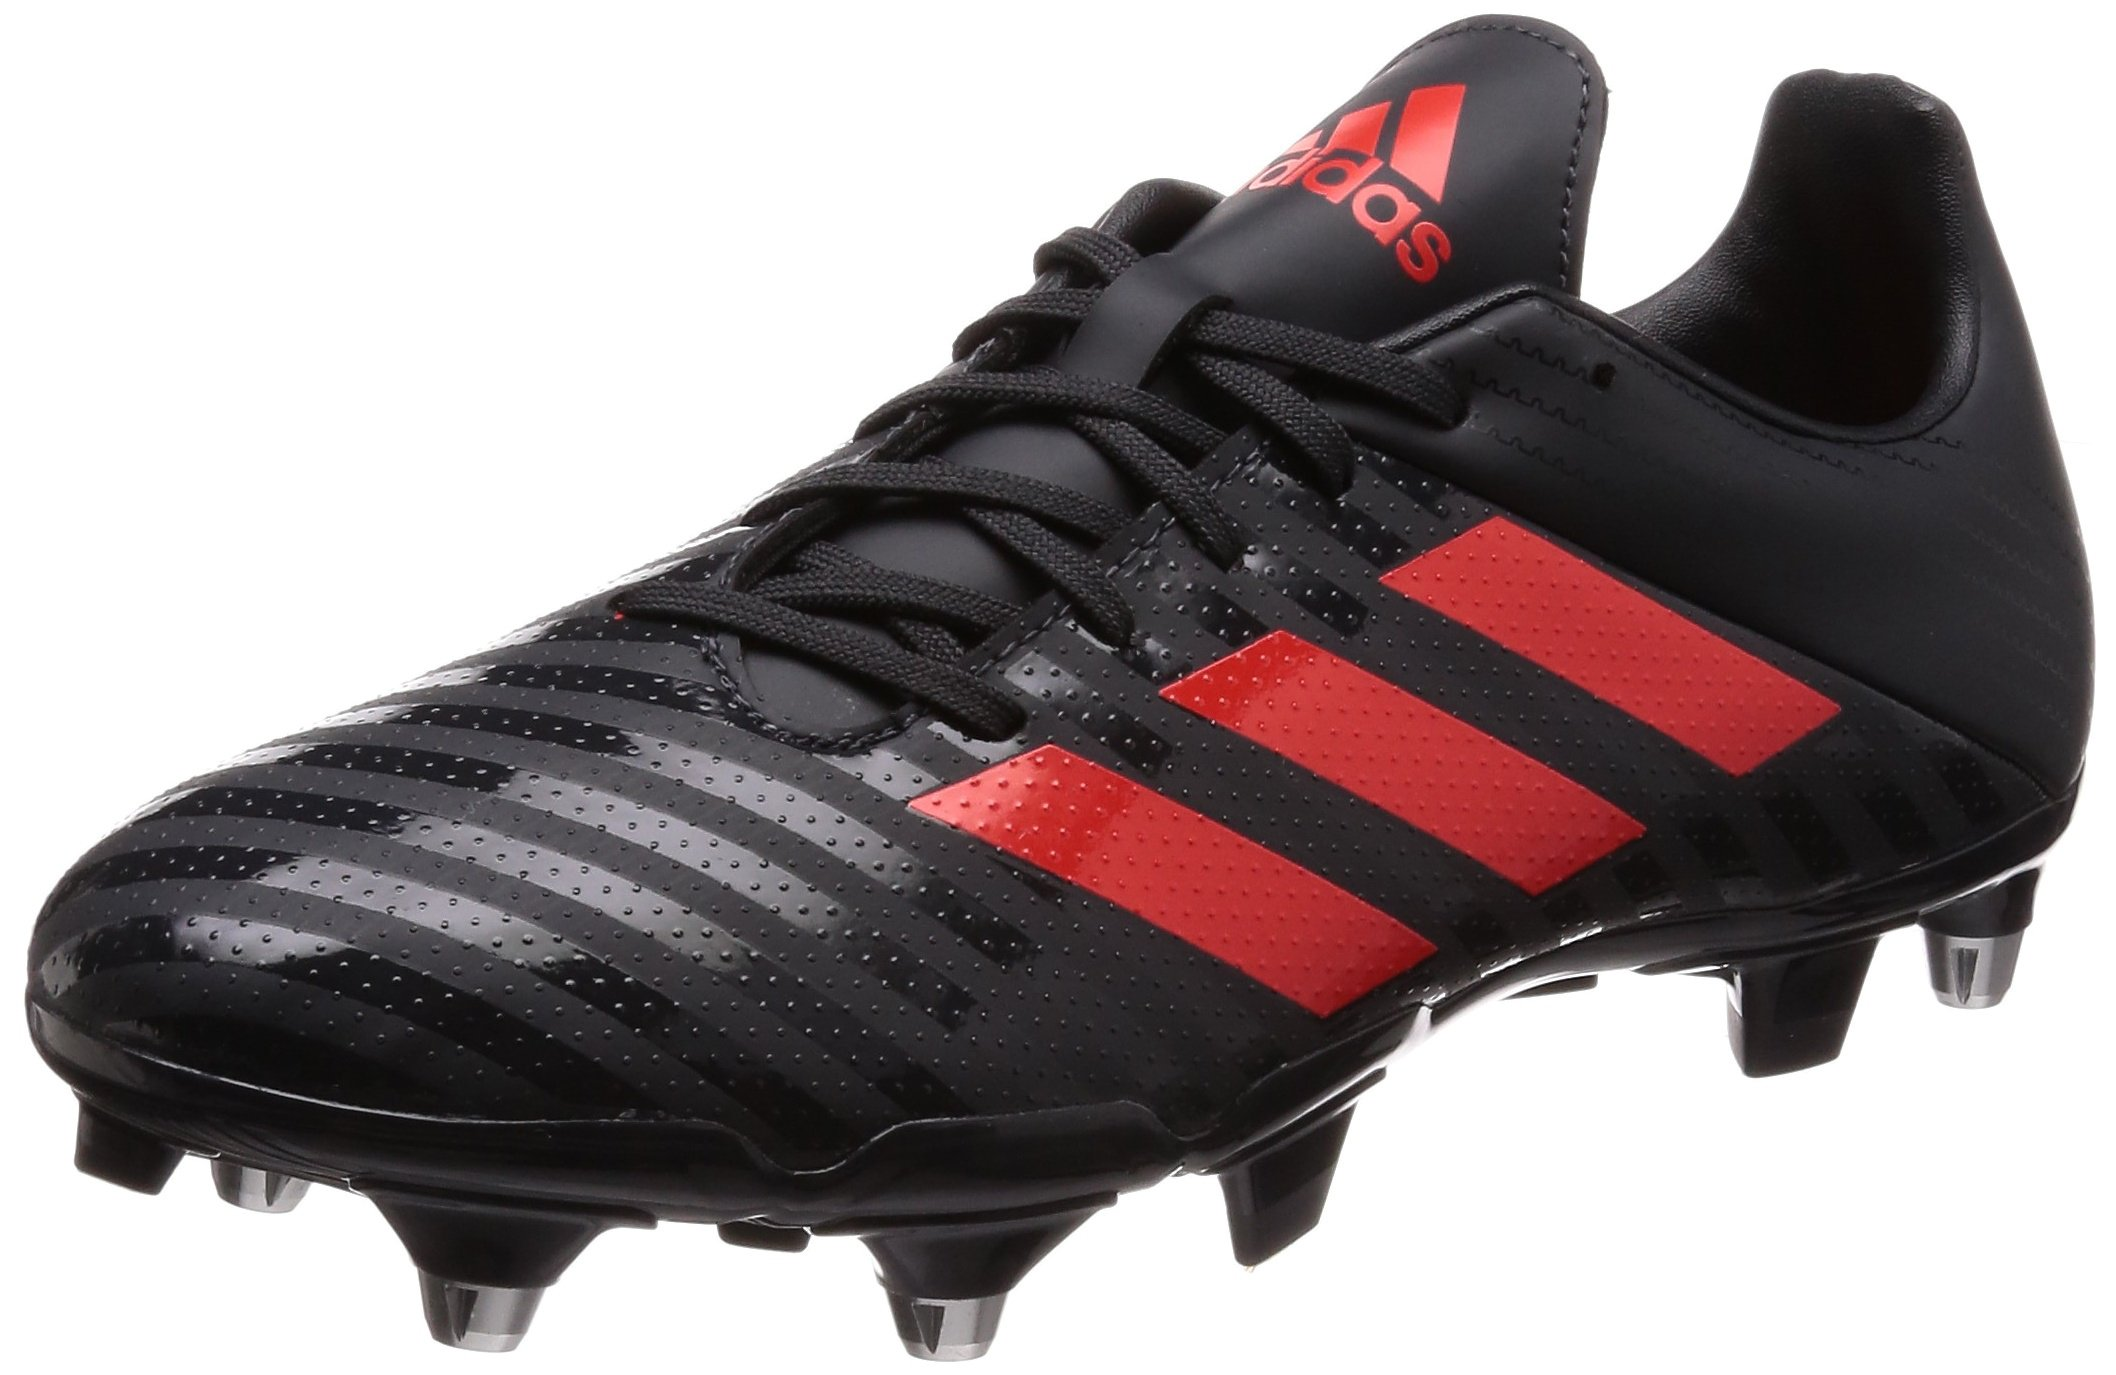 adidas Malice SG Rugby Boots - Black/Red - UK 8 by adidas